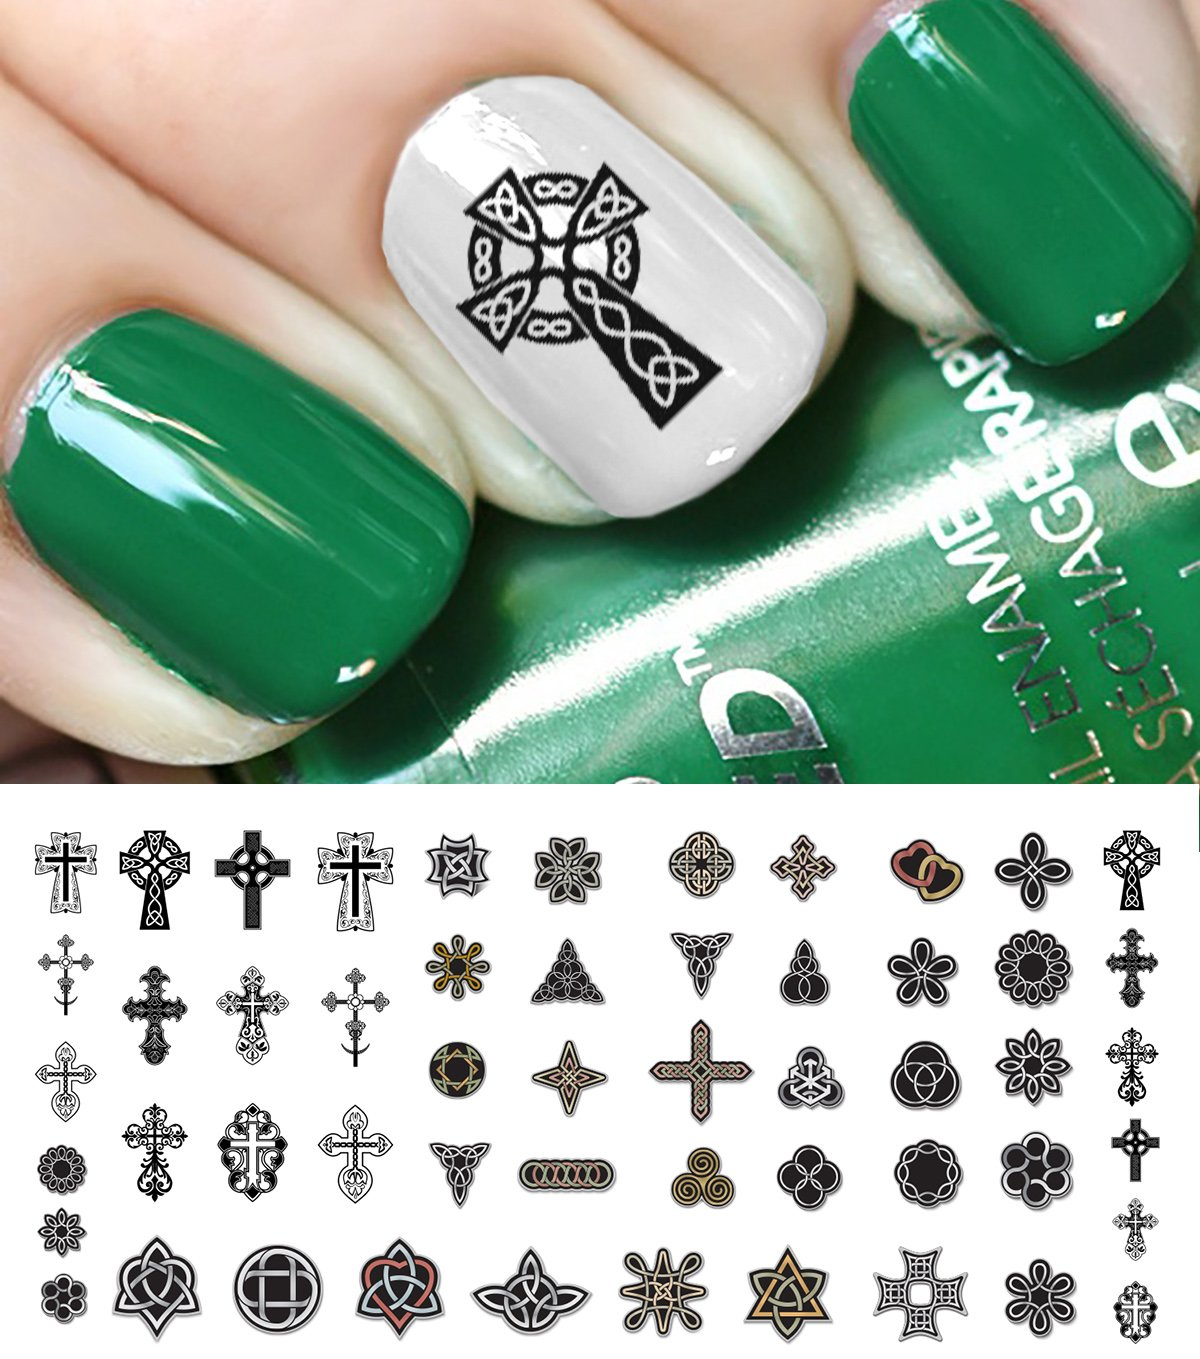 Amazon.com: Celtic Trinity Knot Waterslide Nail Decals - 50PC: Beauty